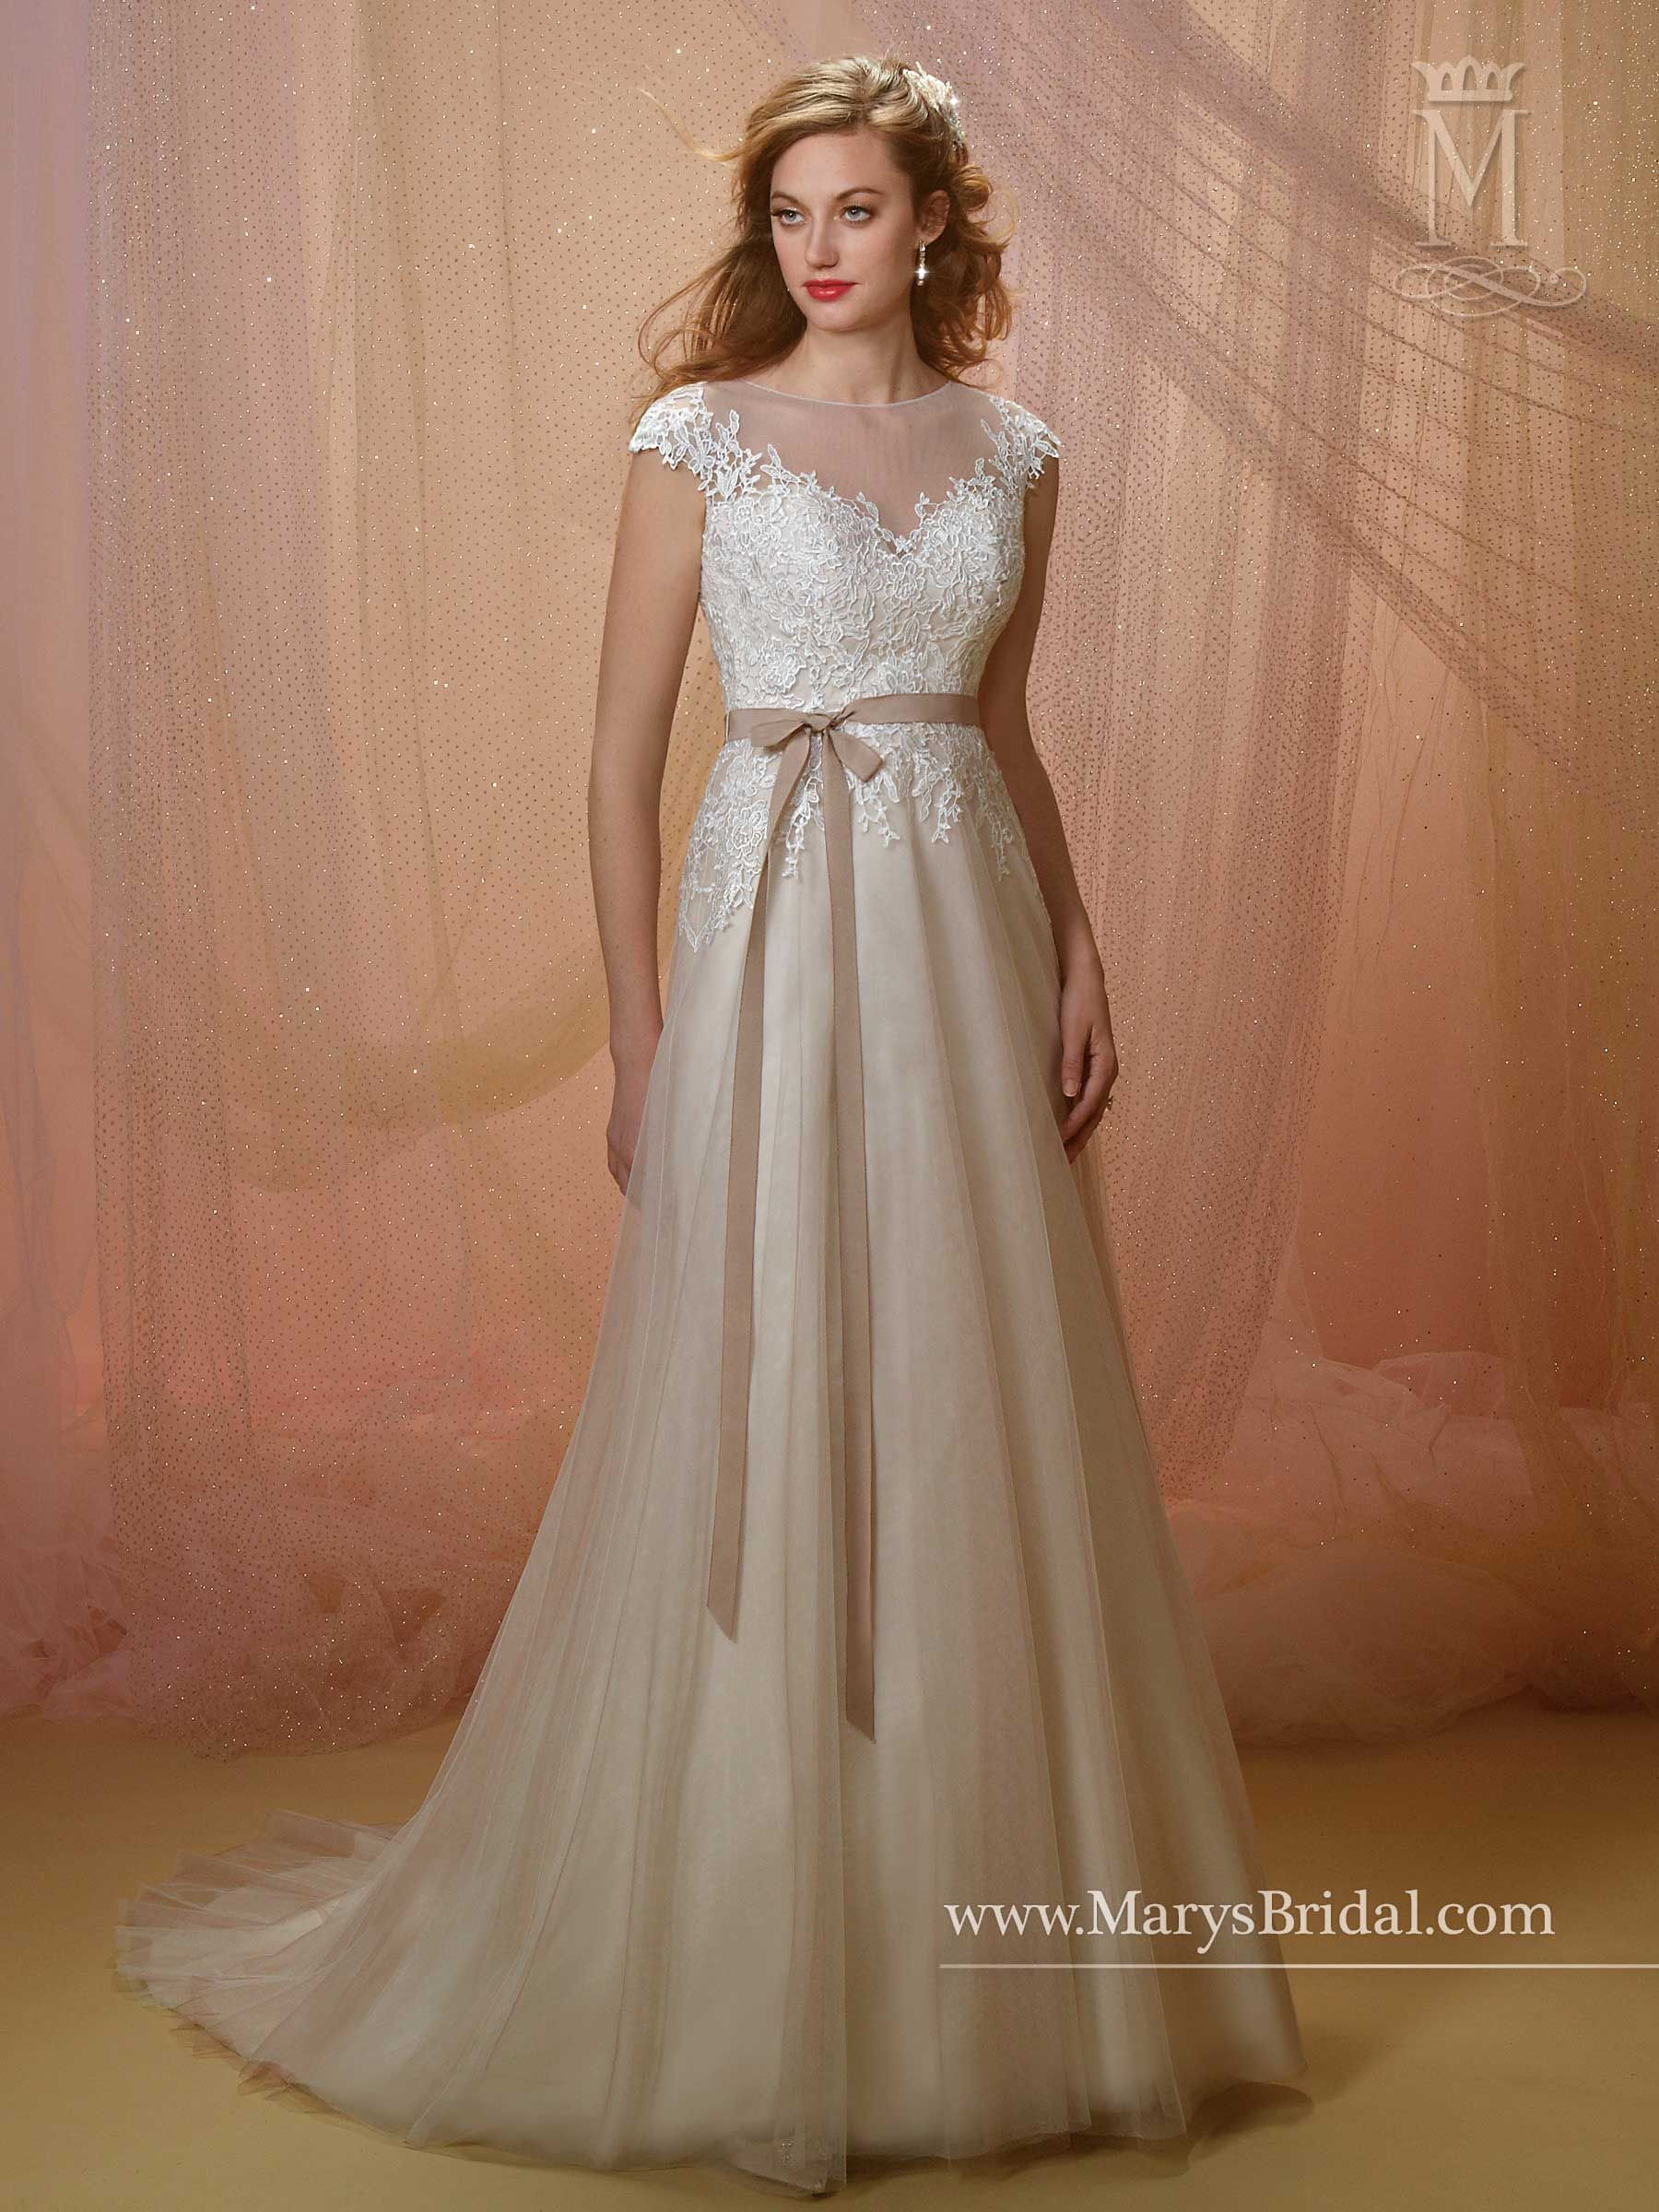 Best wedding dresses for my shape  The hottest styles and best selections are found at Normans Bridal